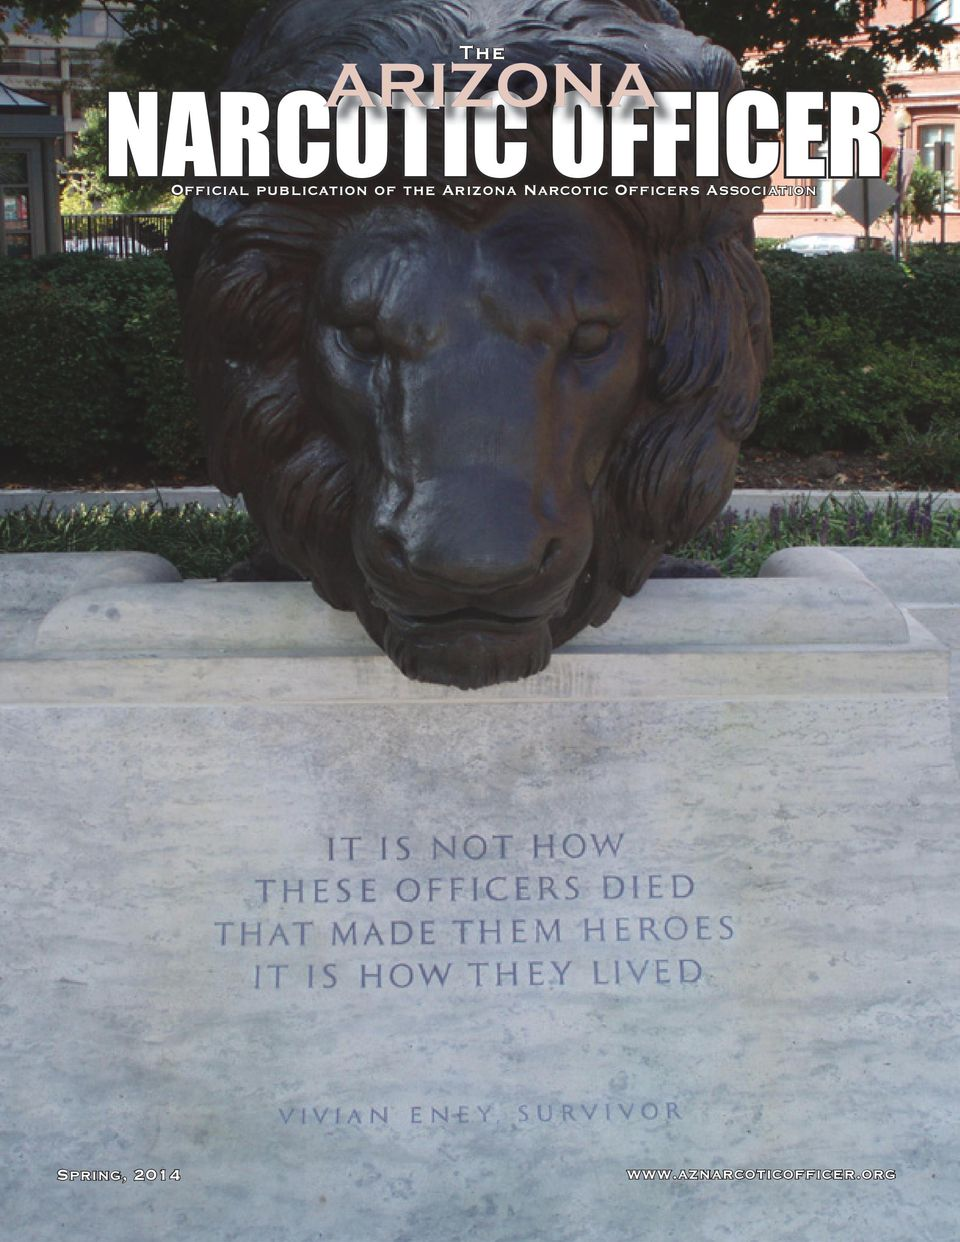 Arizona Narcotic Officers